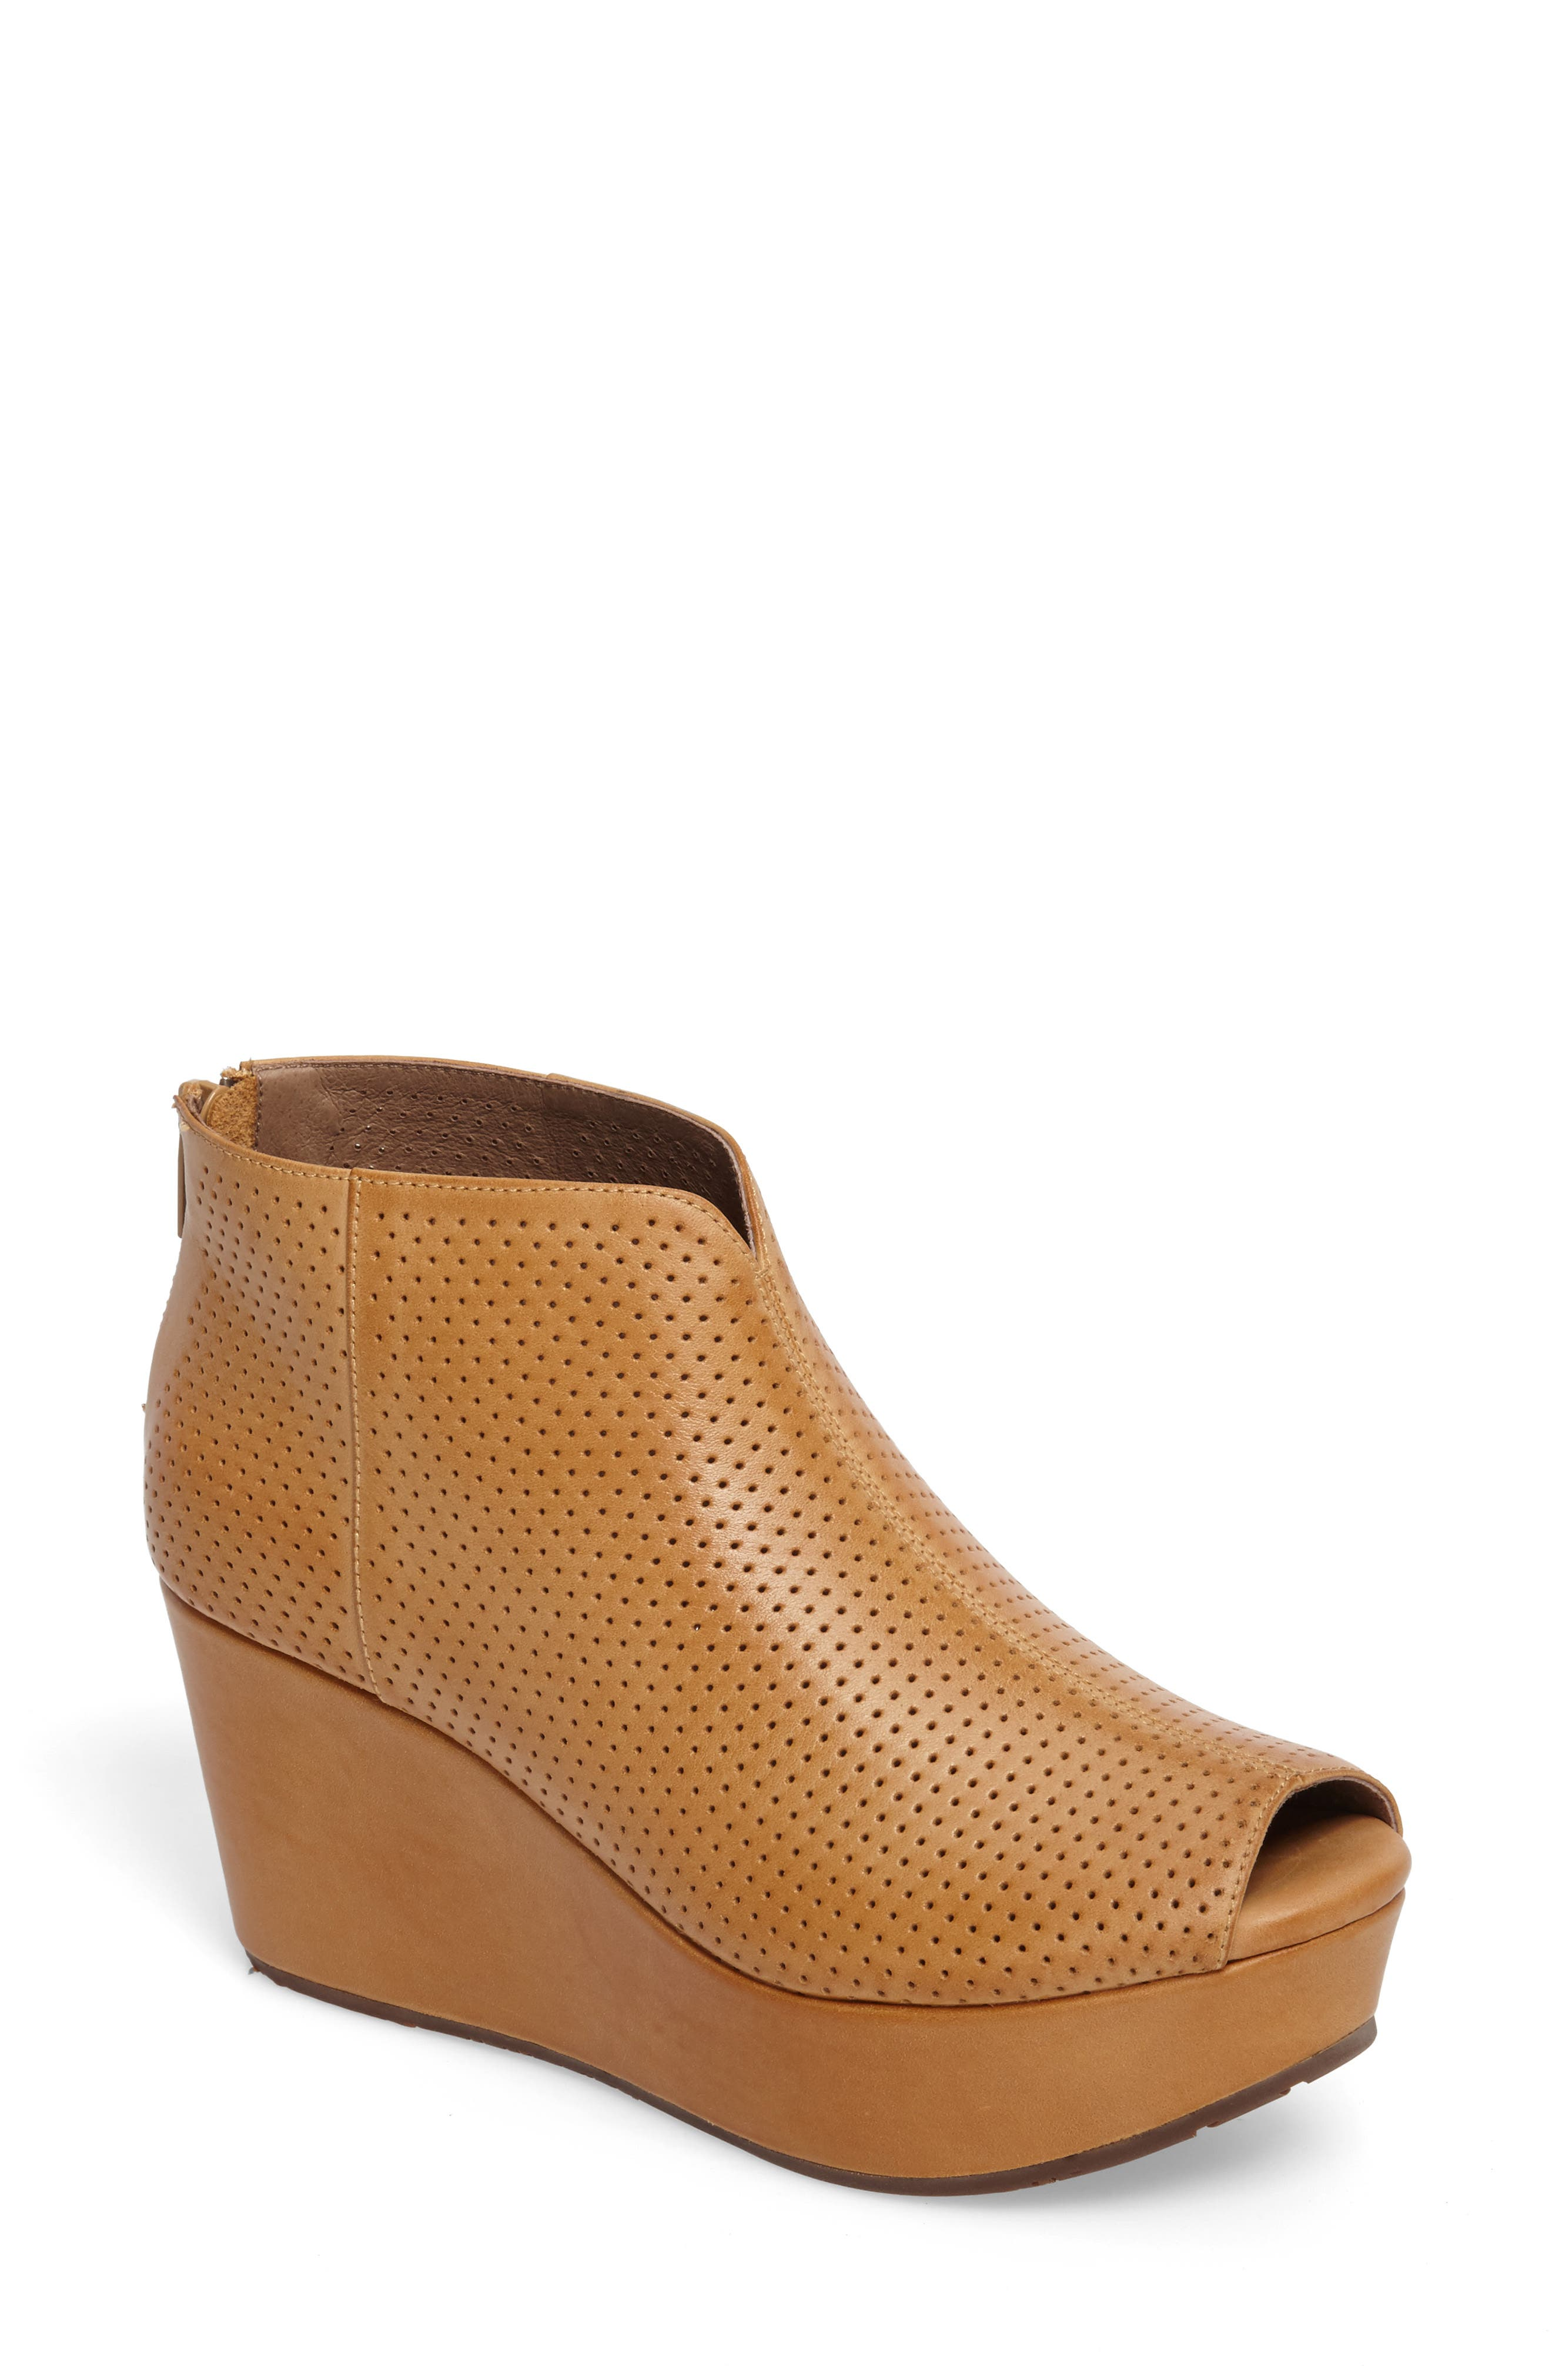 Walee Peep Toe Platform Bootie,                             Main thumbnail 1, color,                             Desert Leather